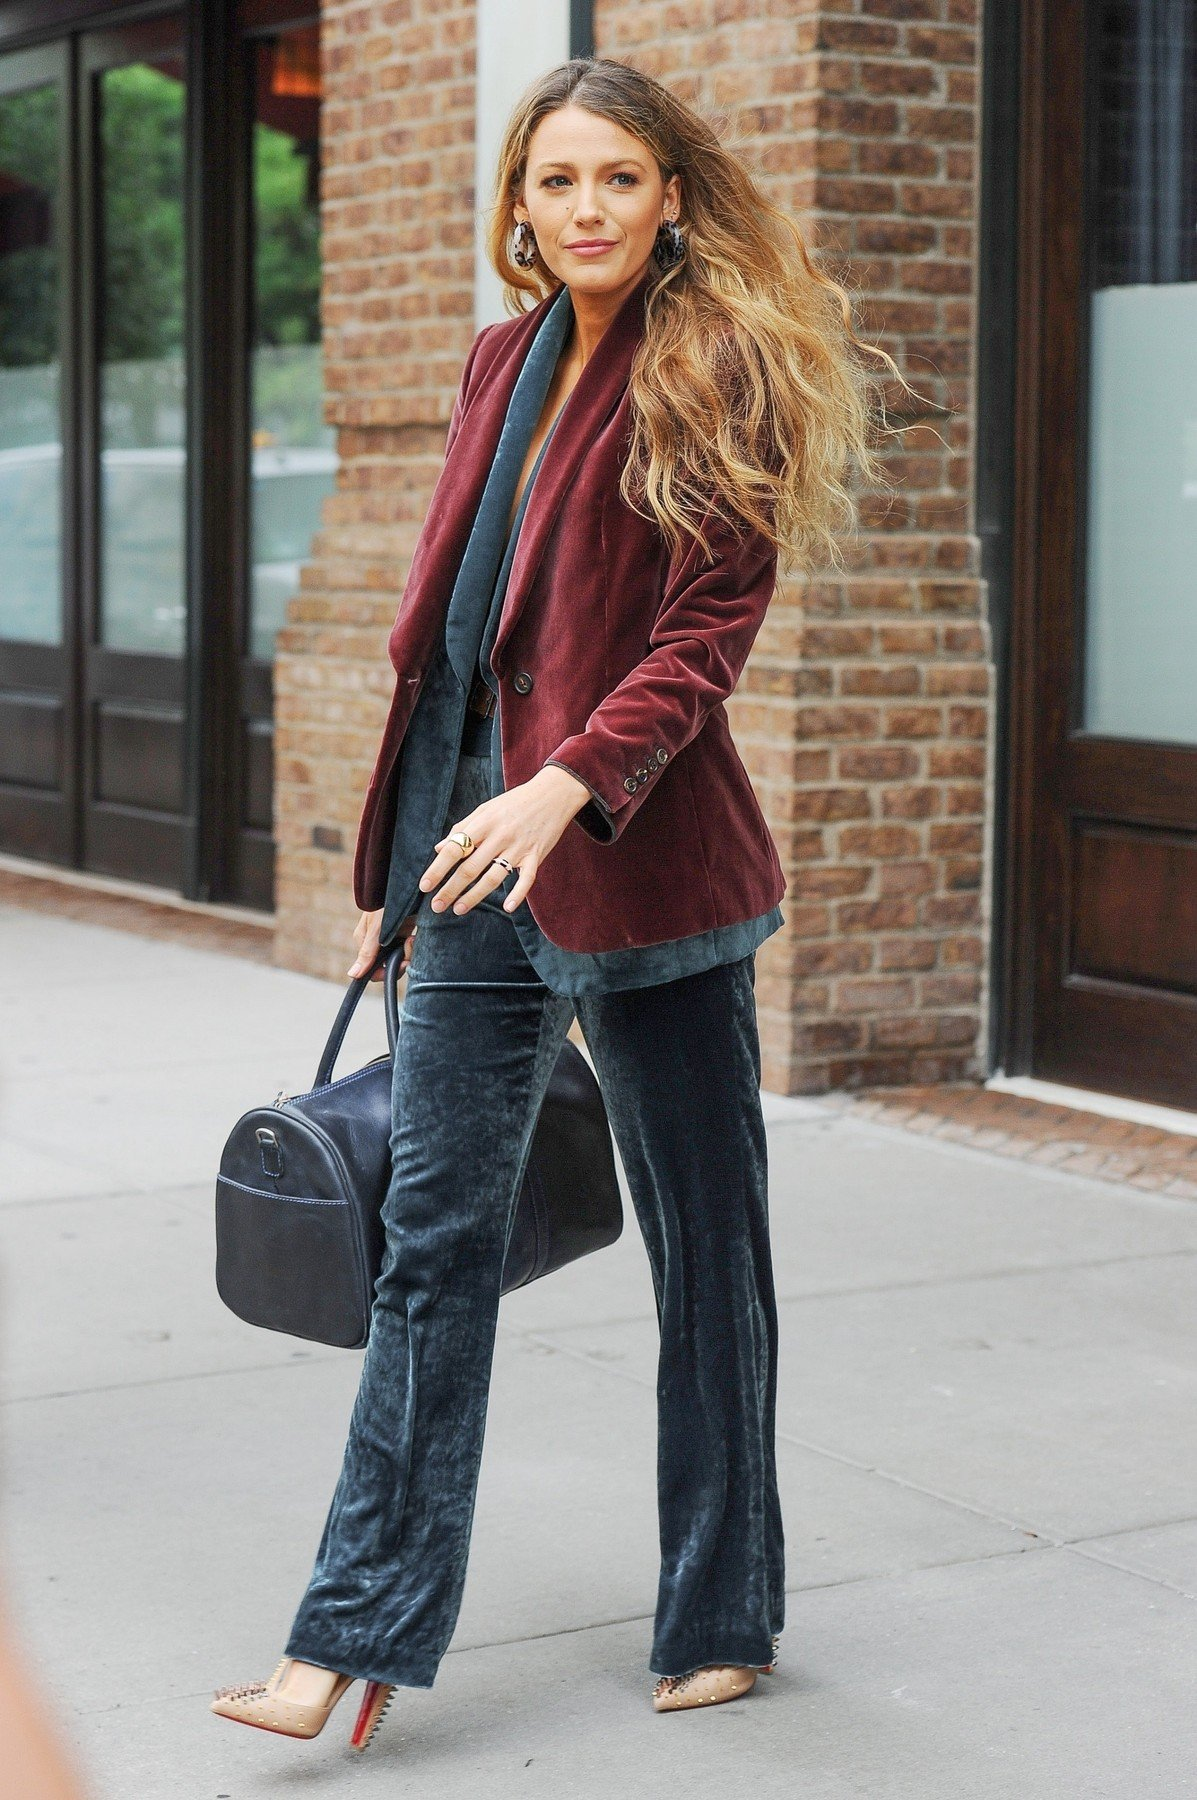 New York, NY  - Blake Lively displays some cleavage as she exits a NYC hotel this morning wearing a fashionable ensemble.  Pictured: Blake Lively    *UK Clients - Pictures Containing Children Please Pixelate Face Prior To Publication*, Image: 382966714, License: Rights-managed, Restrictions: , Model Release: no, Credit line: Profimedia, AKM-GSI